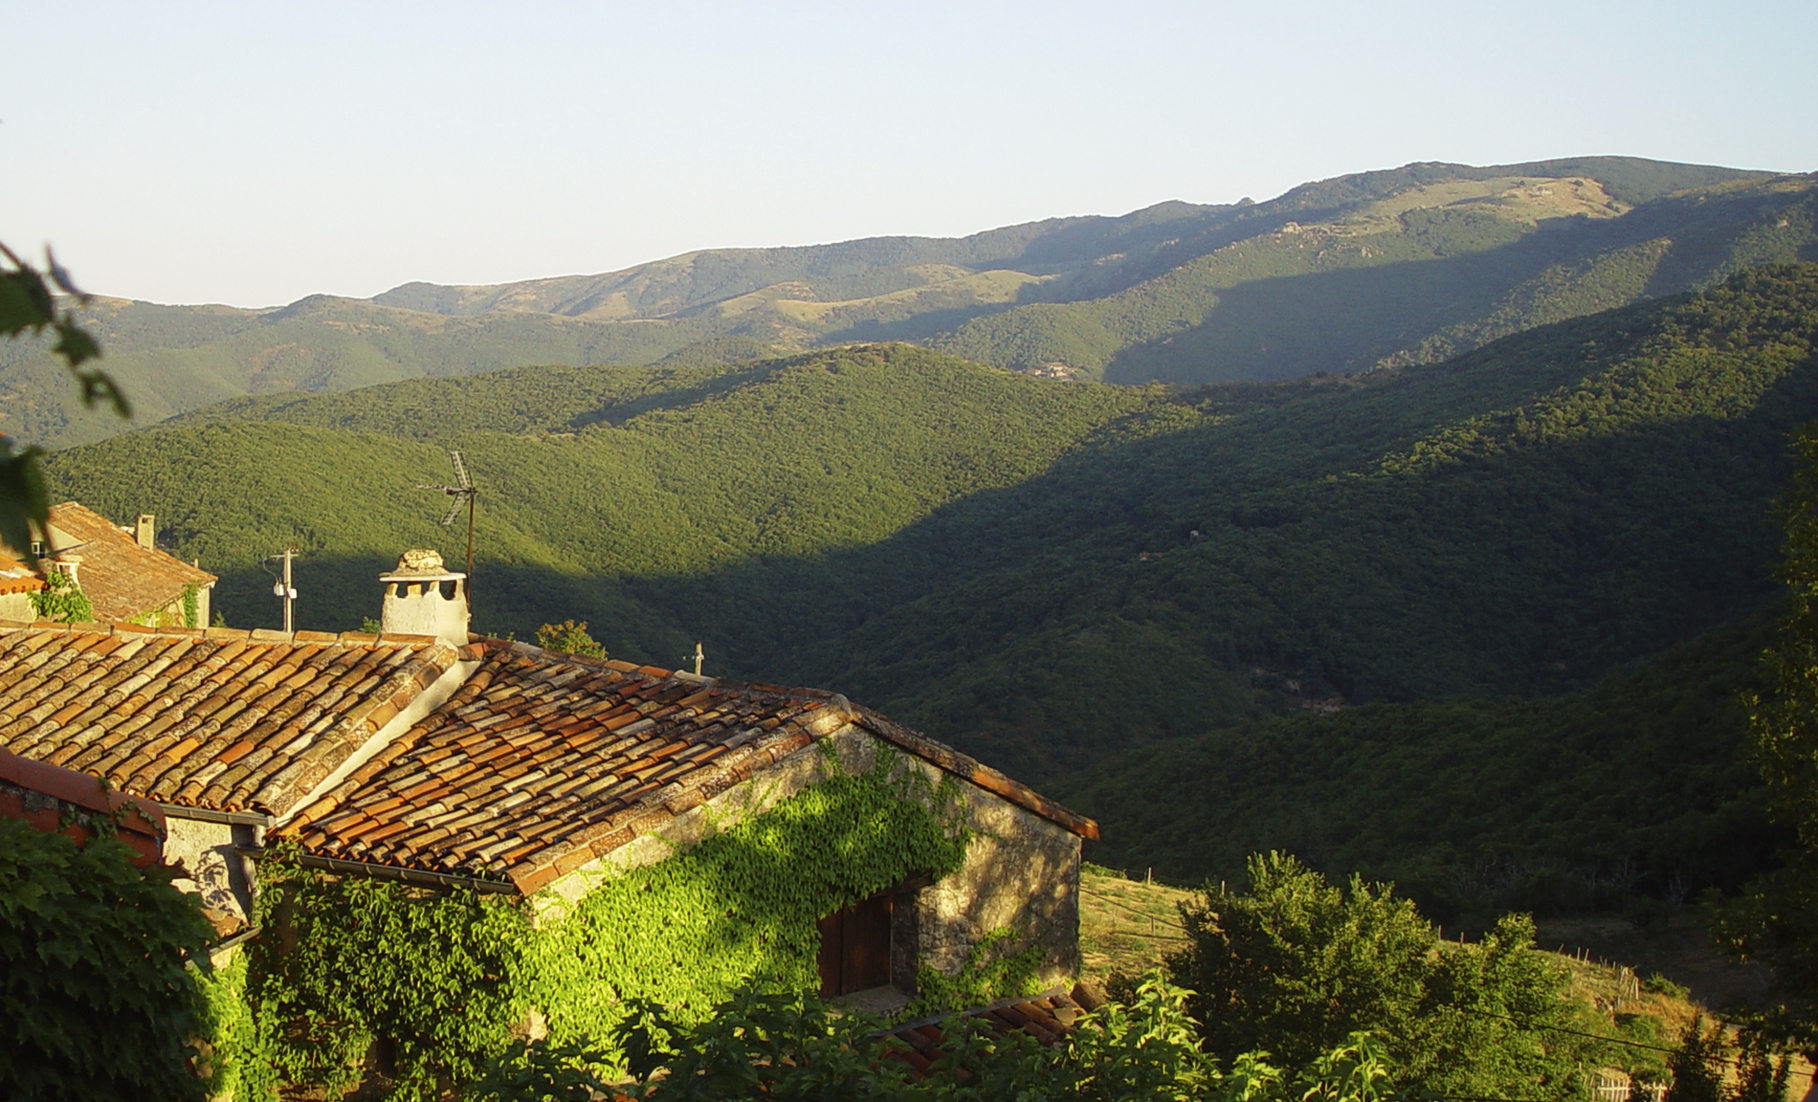 One can see the rolling hills of Les Cevennes Meridionales from everywhere